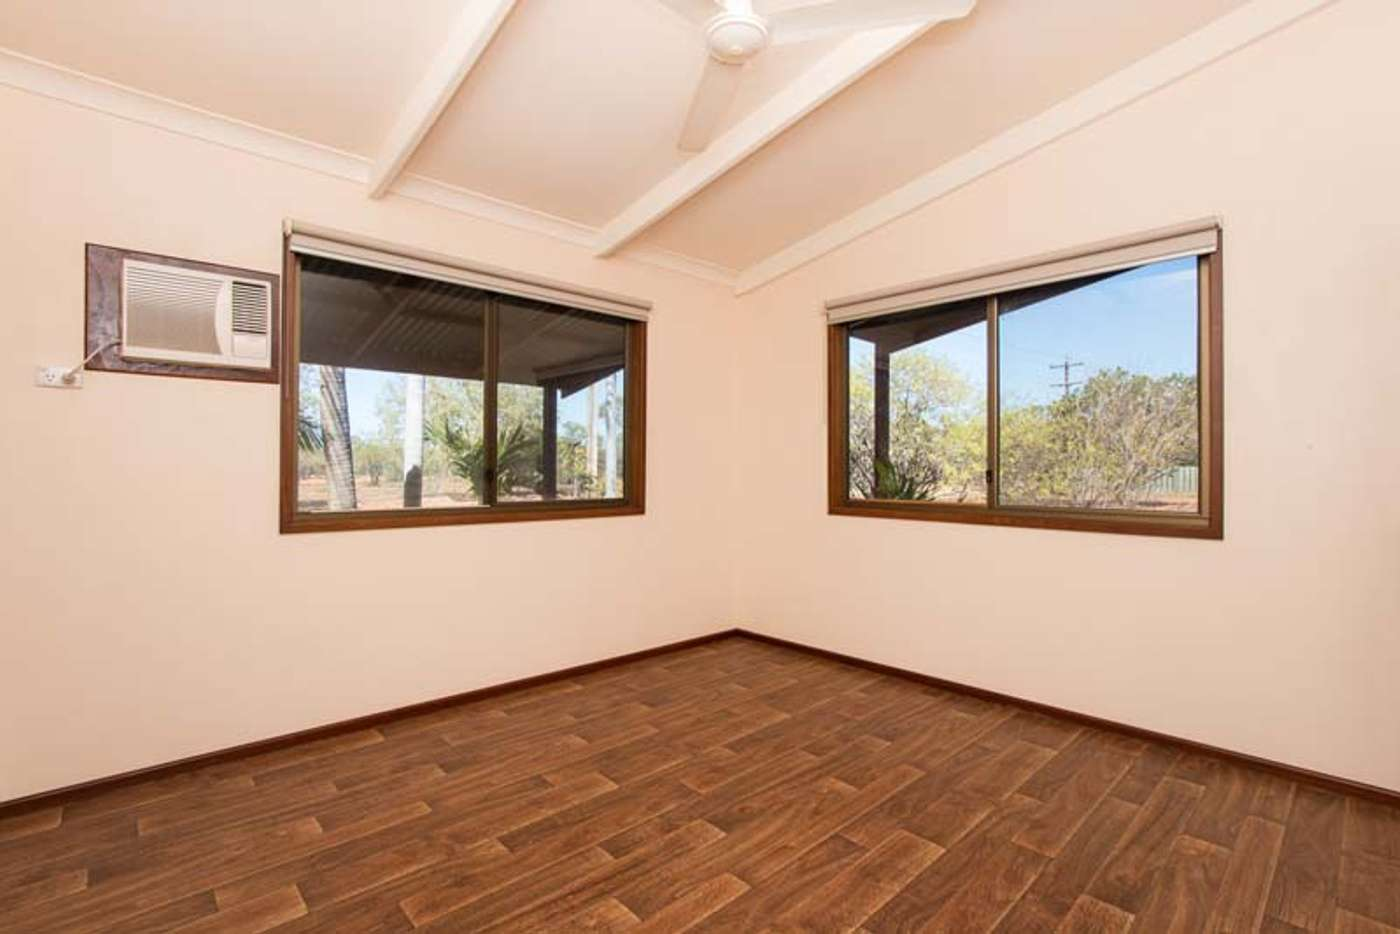 Seventh view of Homely house listing, 1 Miller Way, Broome WA 6725